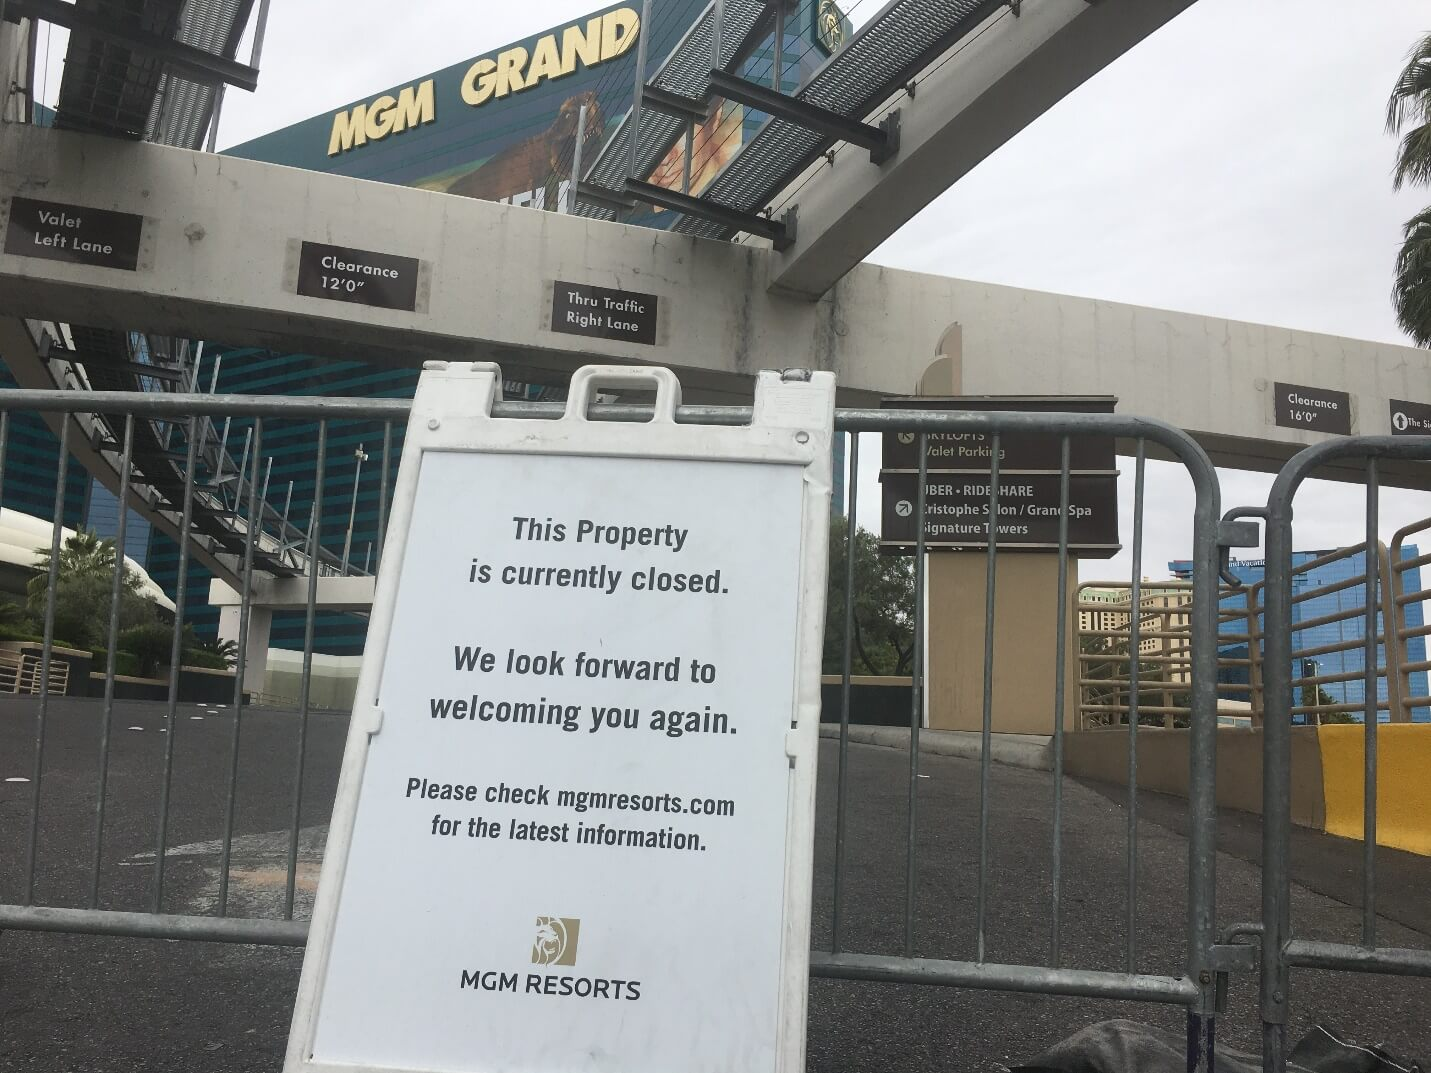 mgm grand closed